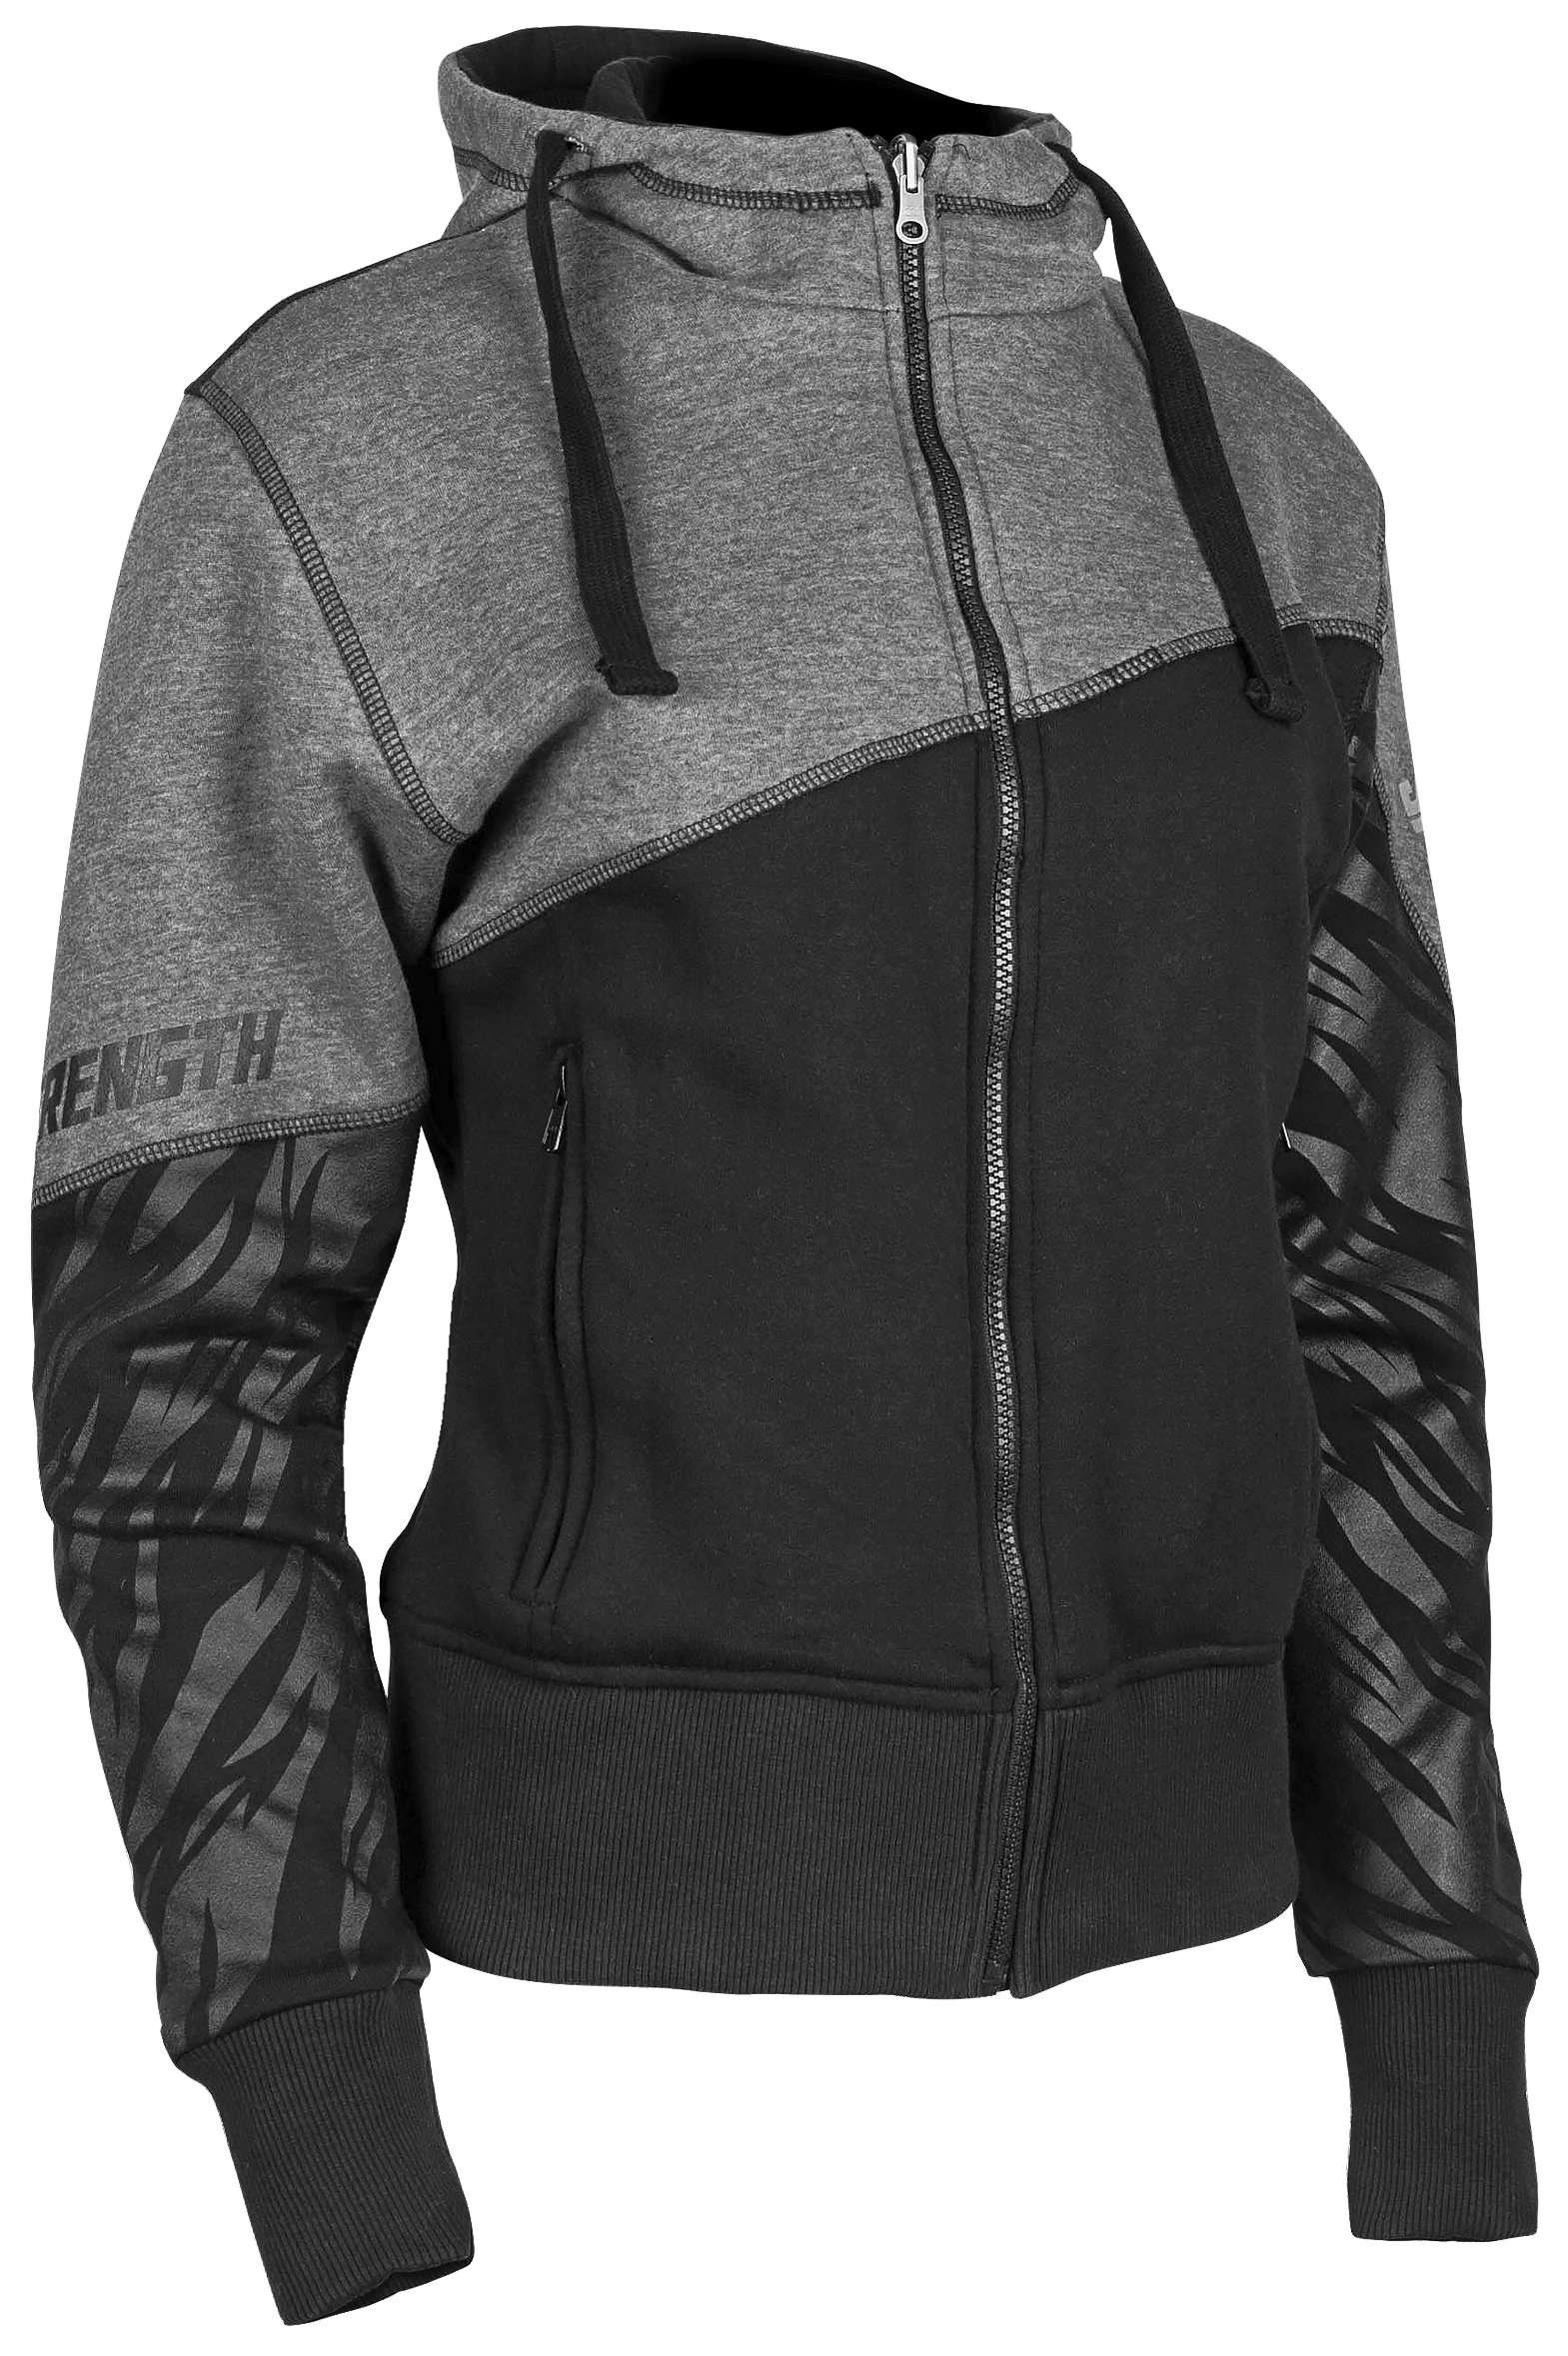 Speed & Strength 1106-1403-0055 Cat Outa Hell 2.0 Womens Armored Hoody, Gender: Womens, Distinct Name: Gray/Black, Primary Color: Gray, Size: XL